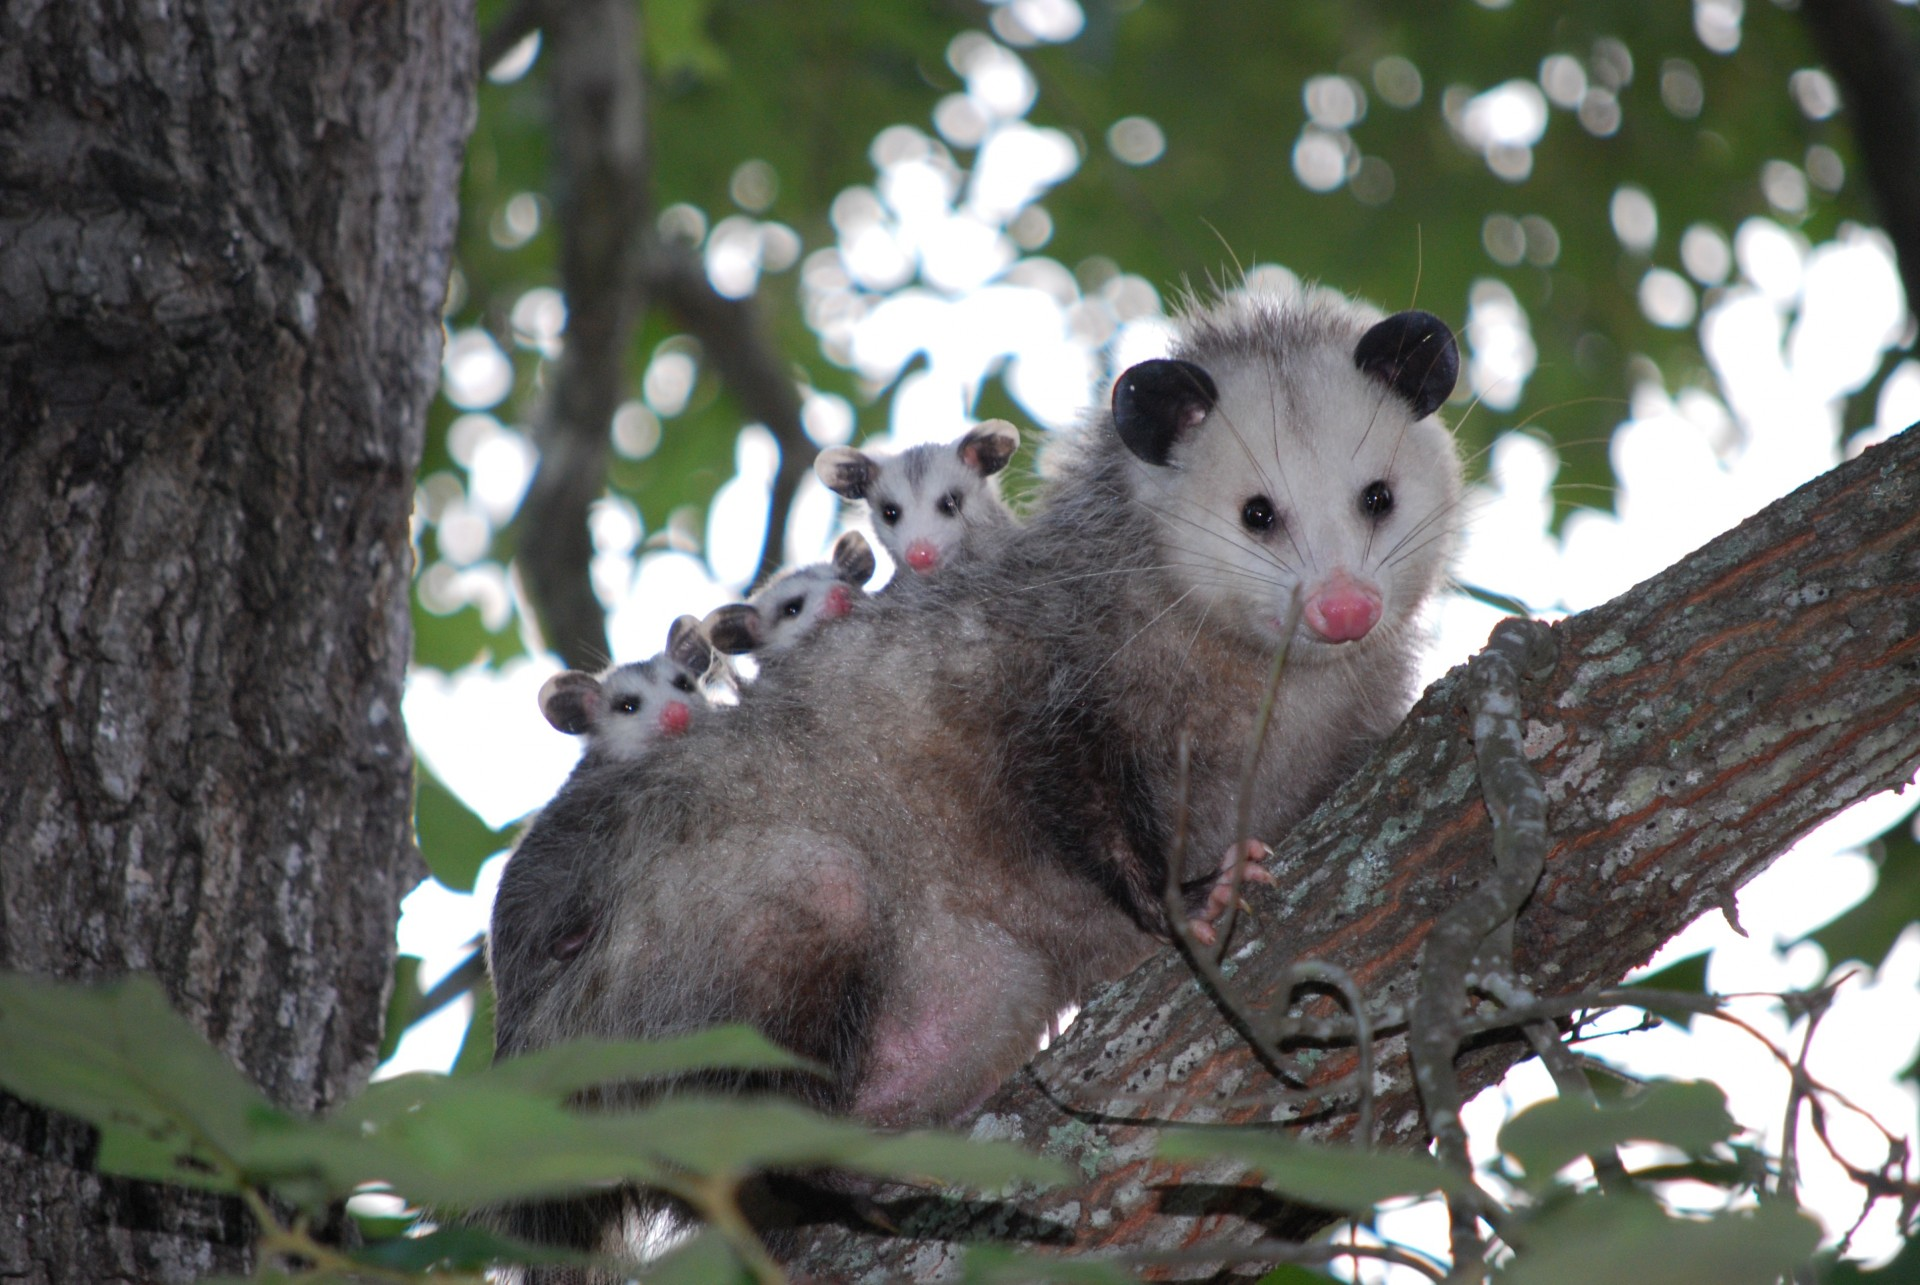 Female opossum in tree with young on her back